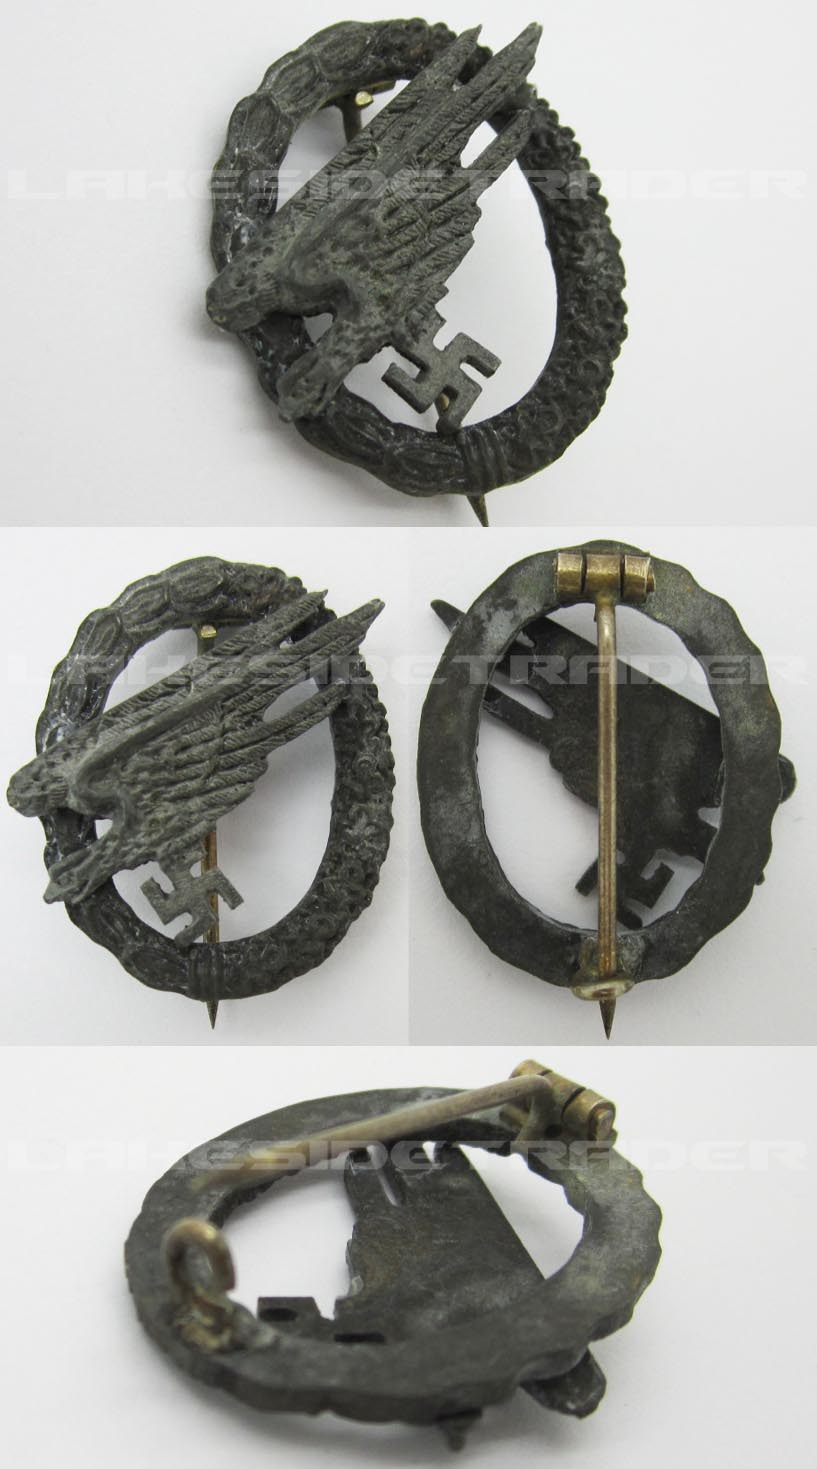 Post-War Miniature Luftwaffe Paratrooper Badge